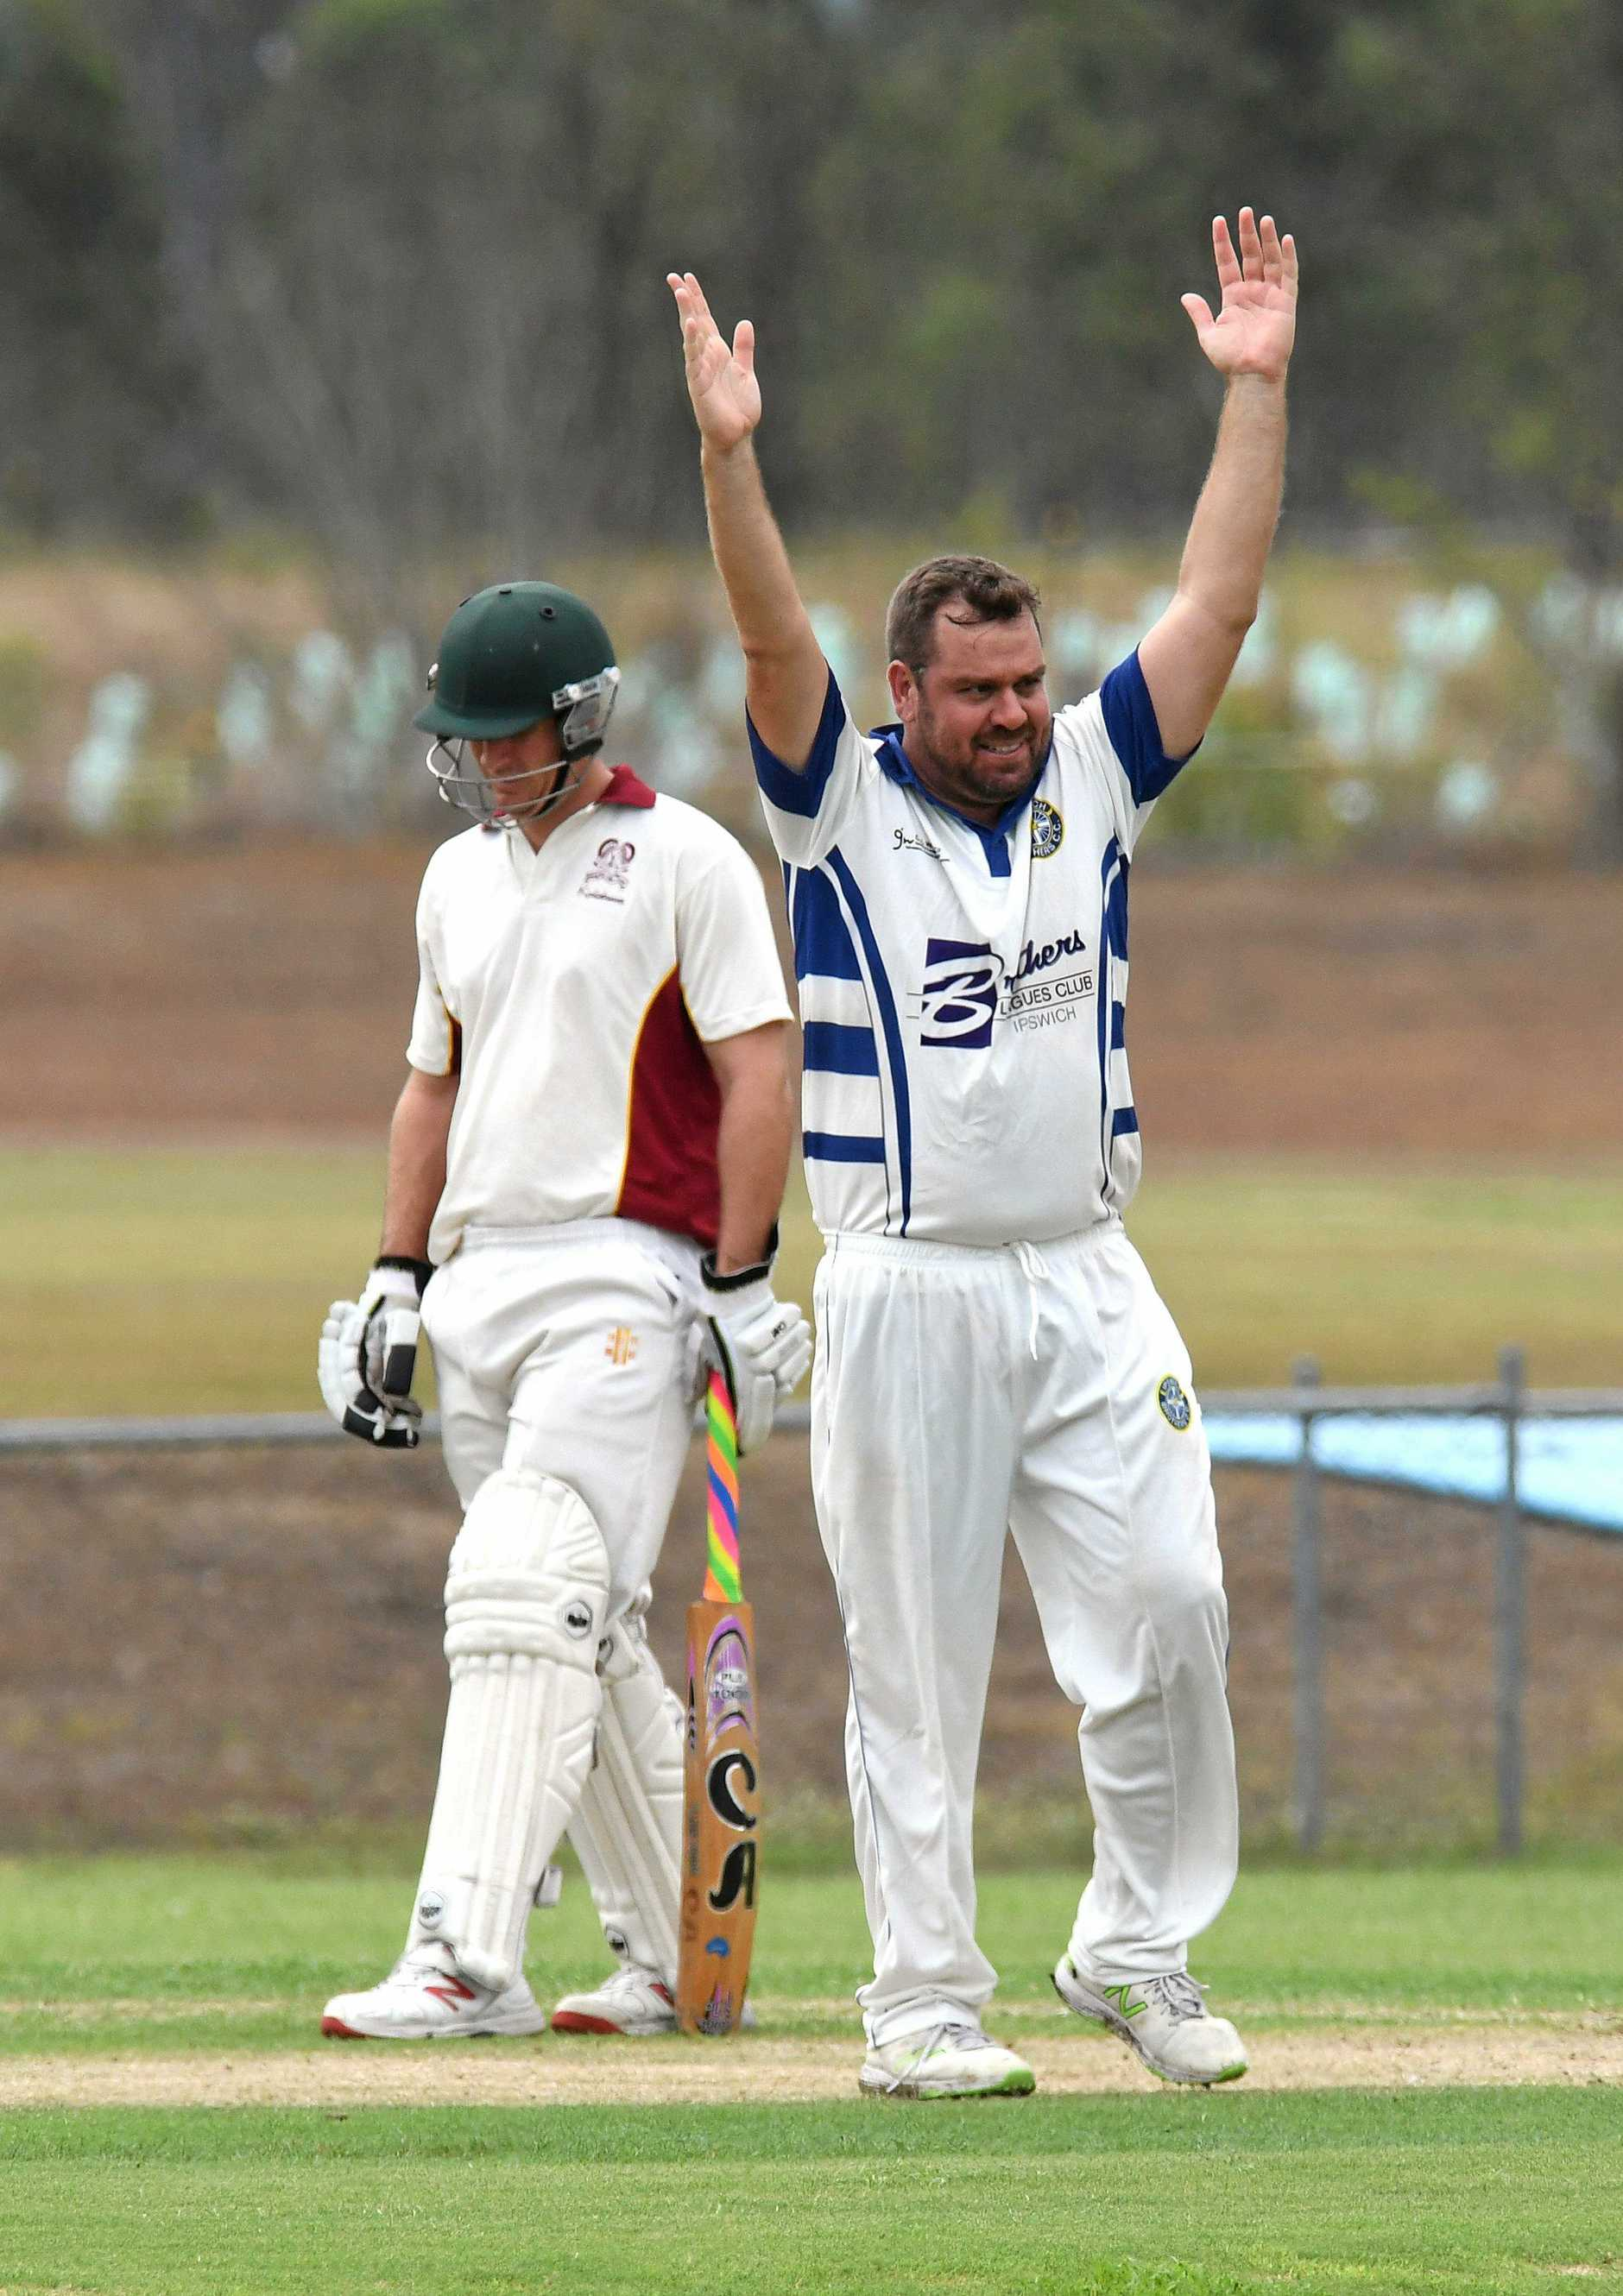 Brothers V Centrals cricket grand final played at Ivor Marsden on Saturday. Dave Richardson celebrates the wicket of Sam Joseph.